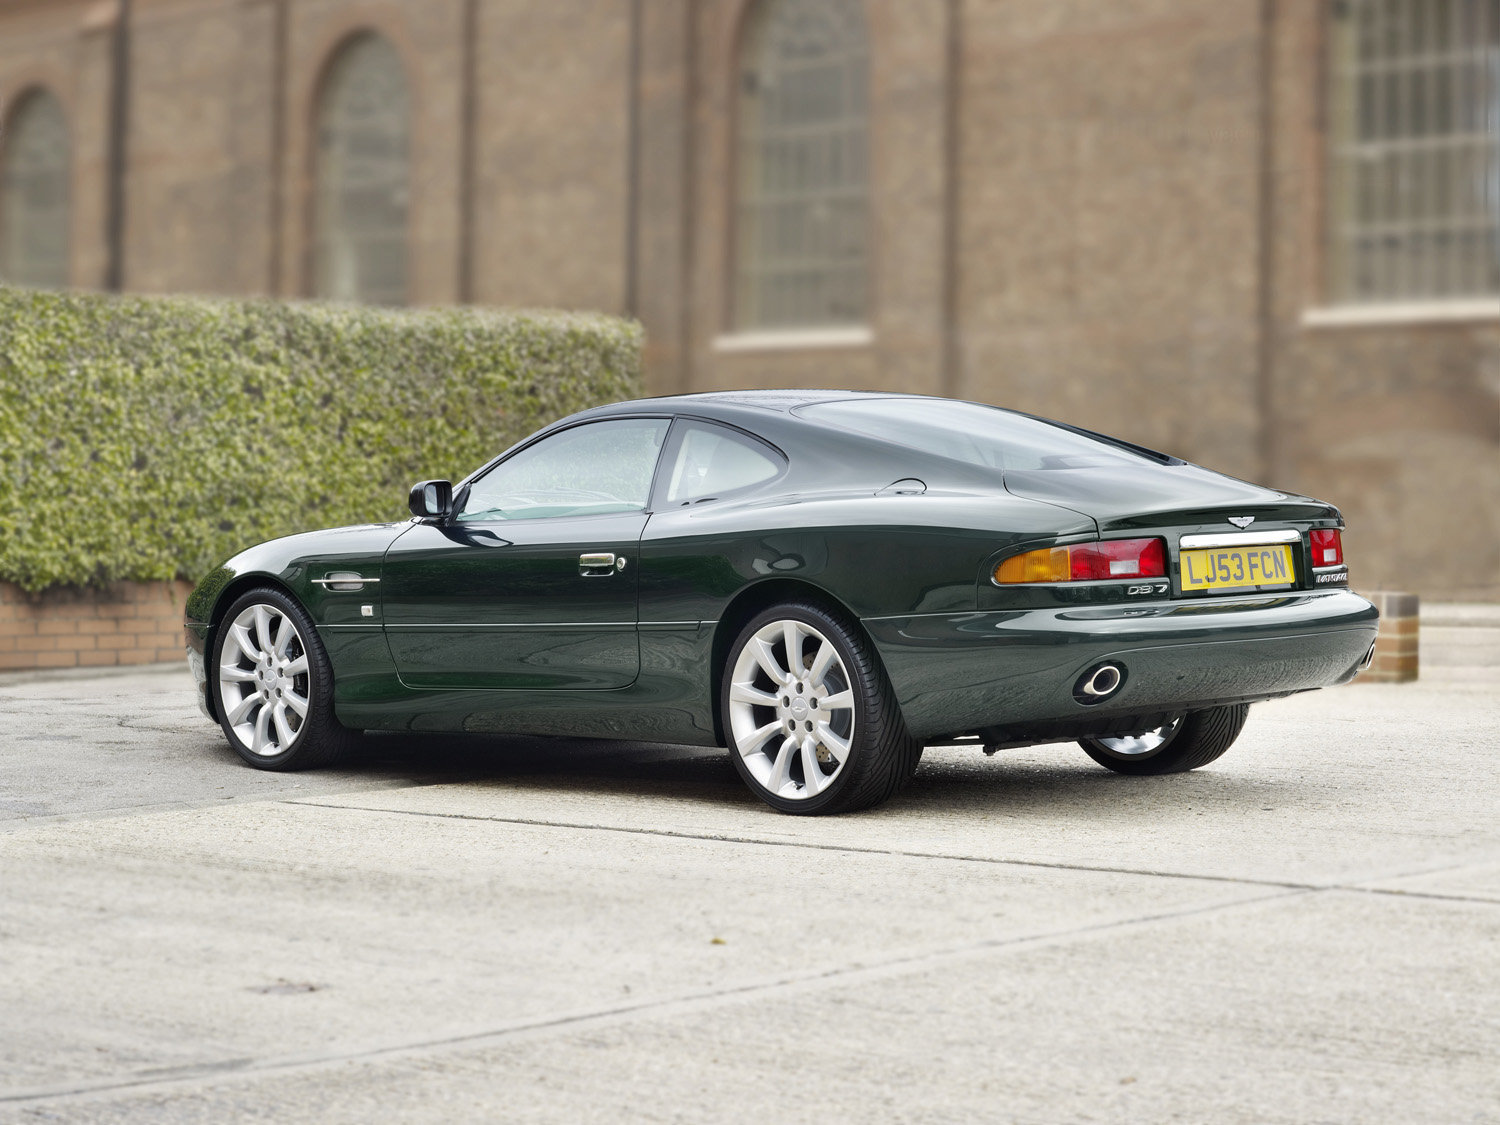 2004 DB7 Vantage.  (200 Miles Only / As New)  For Sale (picture 2 of 5)